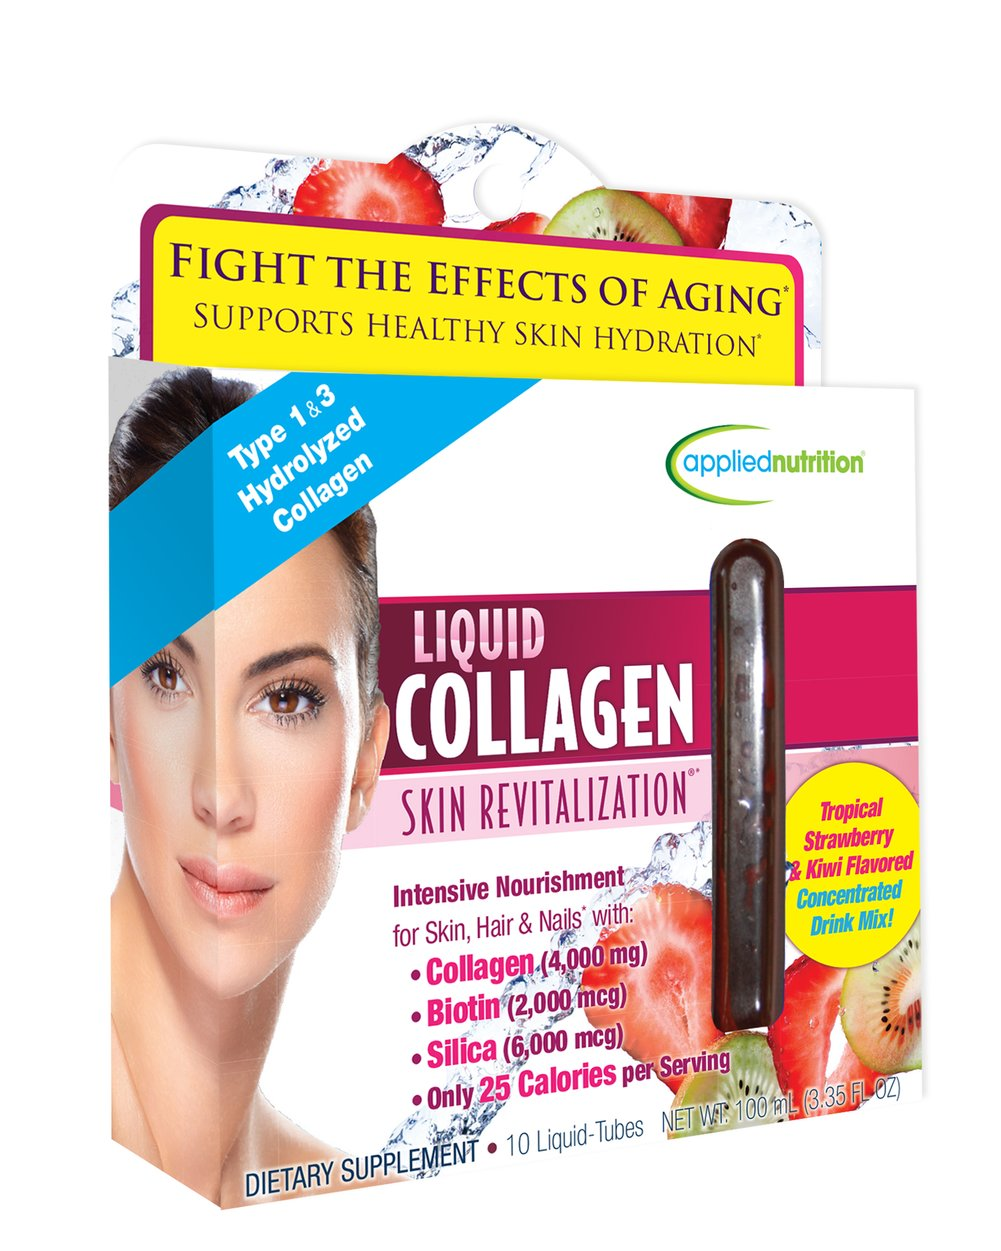 Liquid Collagen 4,000 mg Skin Revitalization™ <p><strong>From the Manufacturer''s Label:</strong></p><p><strong>Intensive Nourishment for Skin, Hair  & Nails</strong> with:</p><p>- Collagen (4,000 mg)</p><p>- Biotin (2,000 mcg)</p><p>- Silica (6,000 mcg)</p><p>- Vitamin A & E</p><p>Strawberry & Kiwi Flavored Concentrated Drink Mix</p><p>Collagen may be